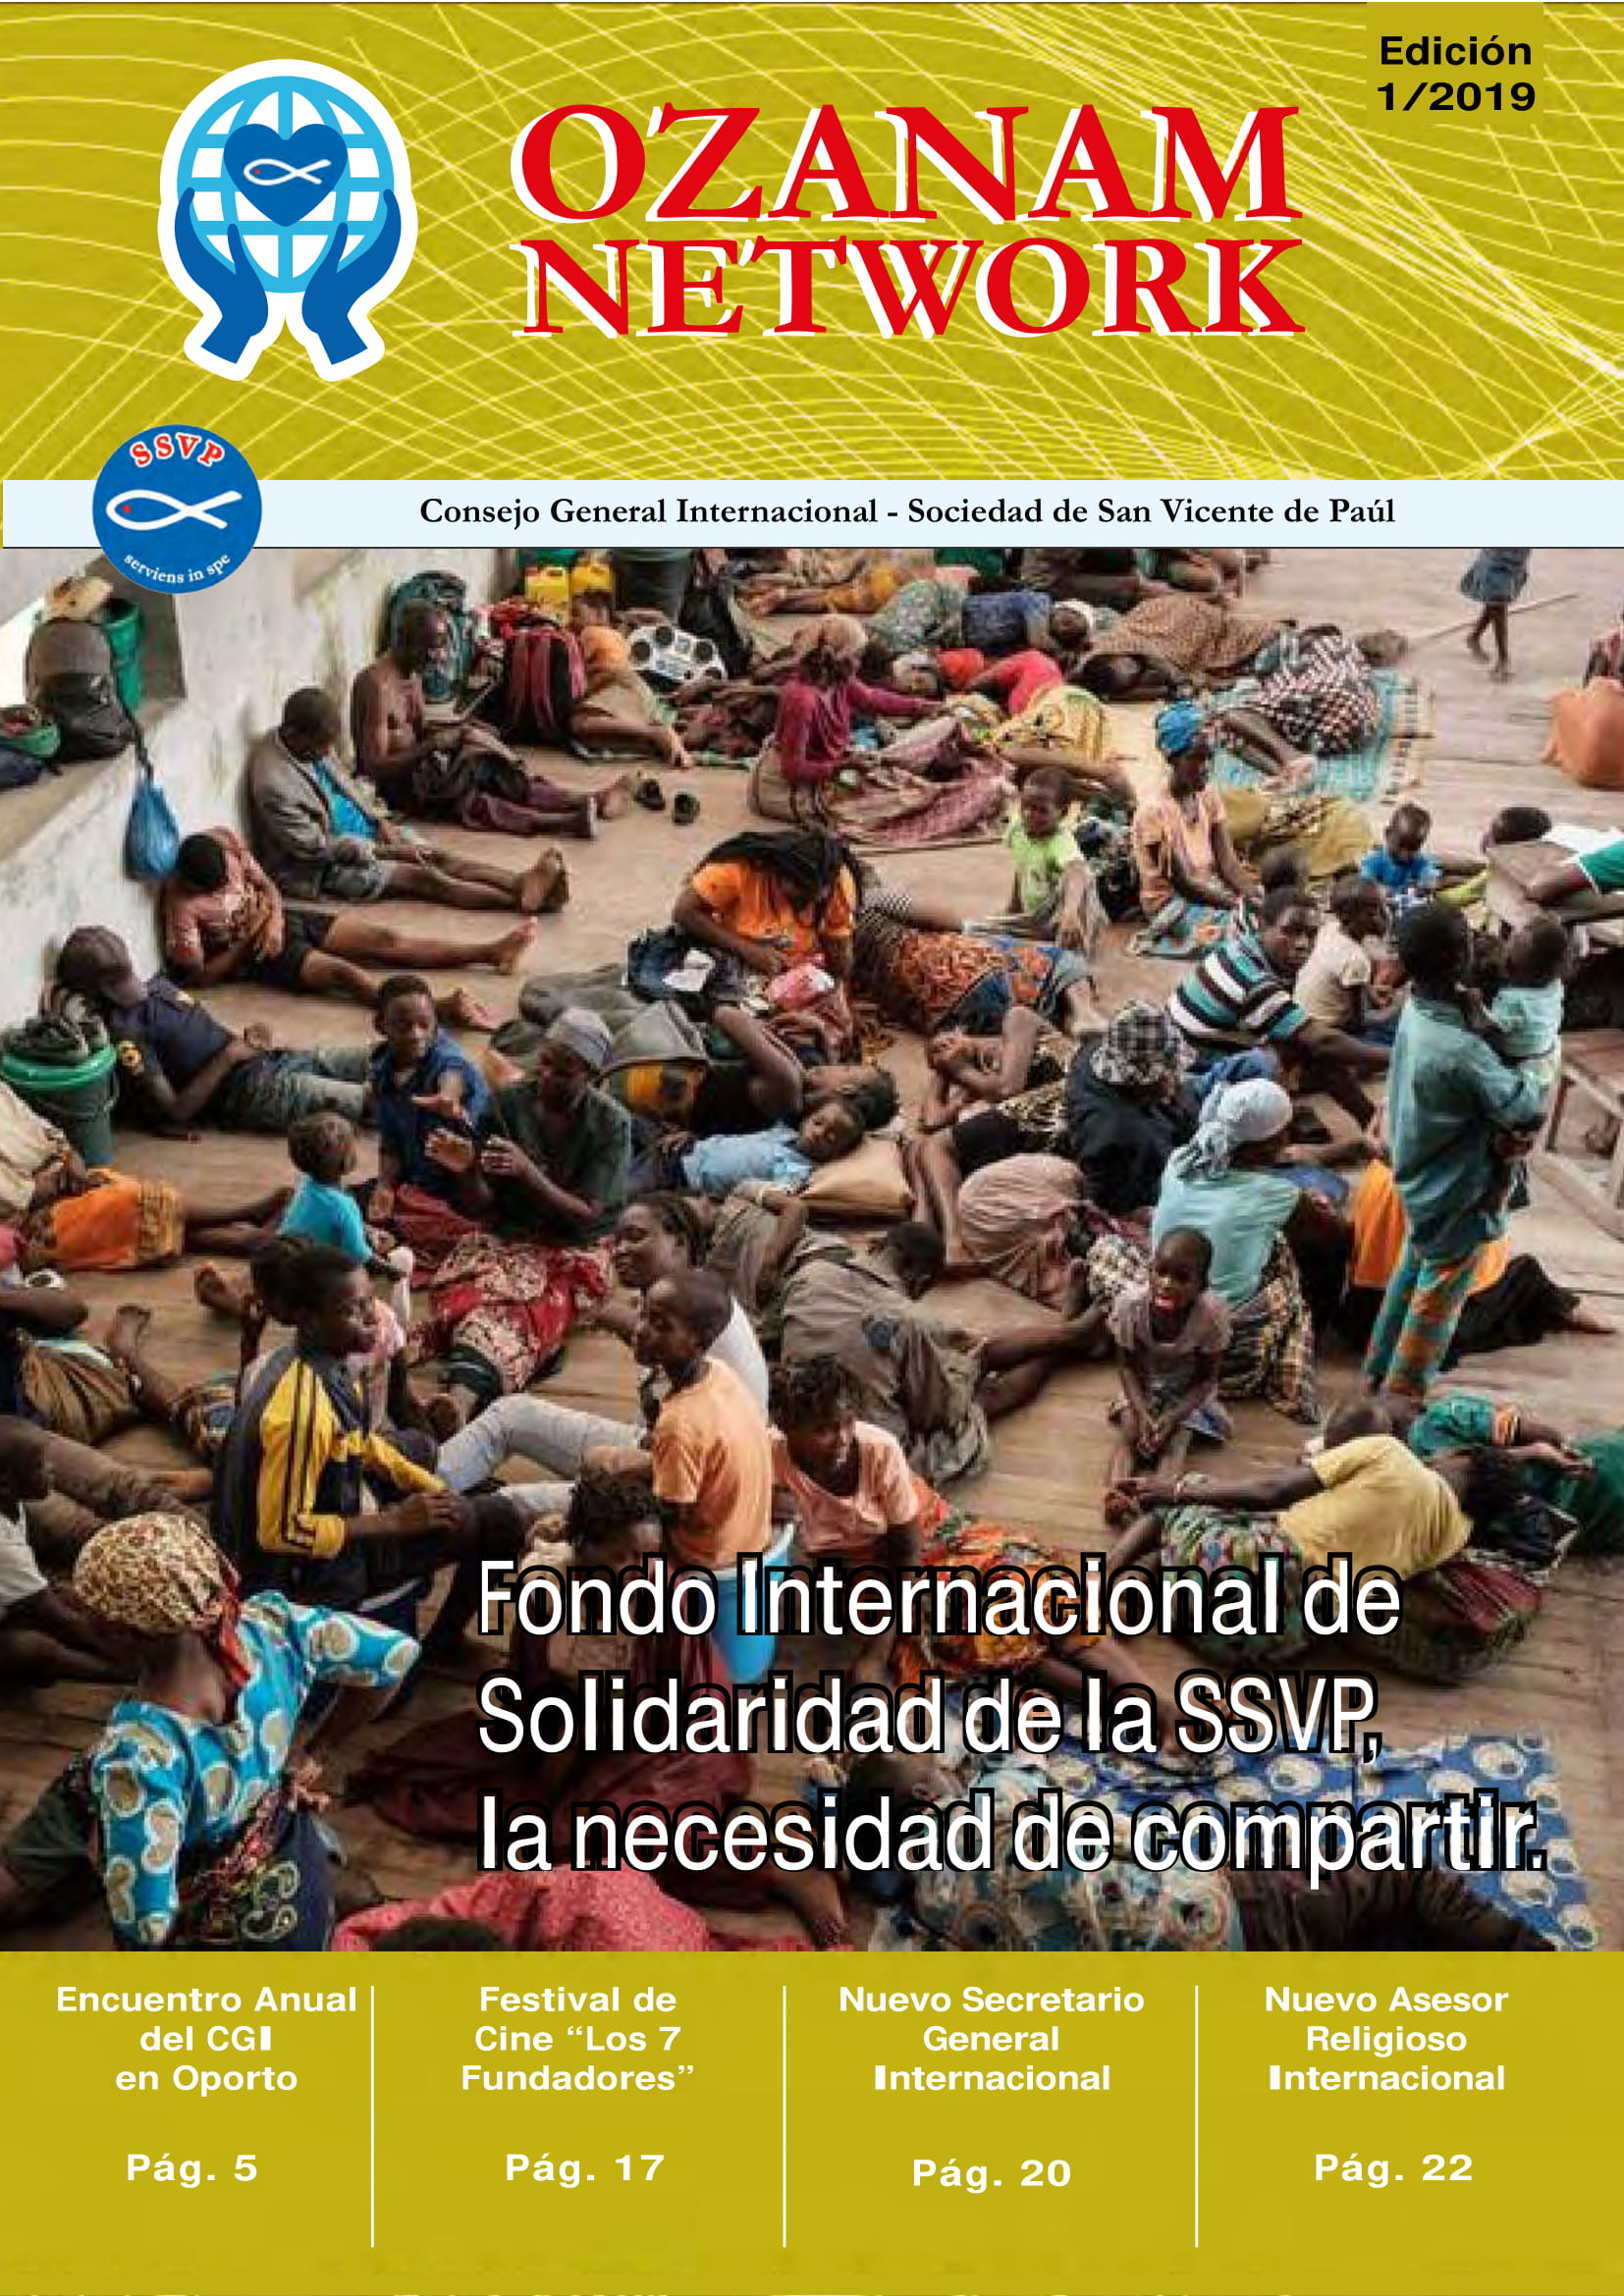 Revista Internacional – Ozanam Network 01/2019